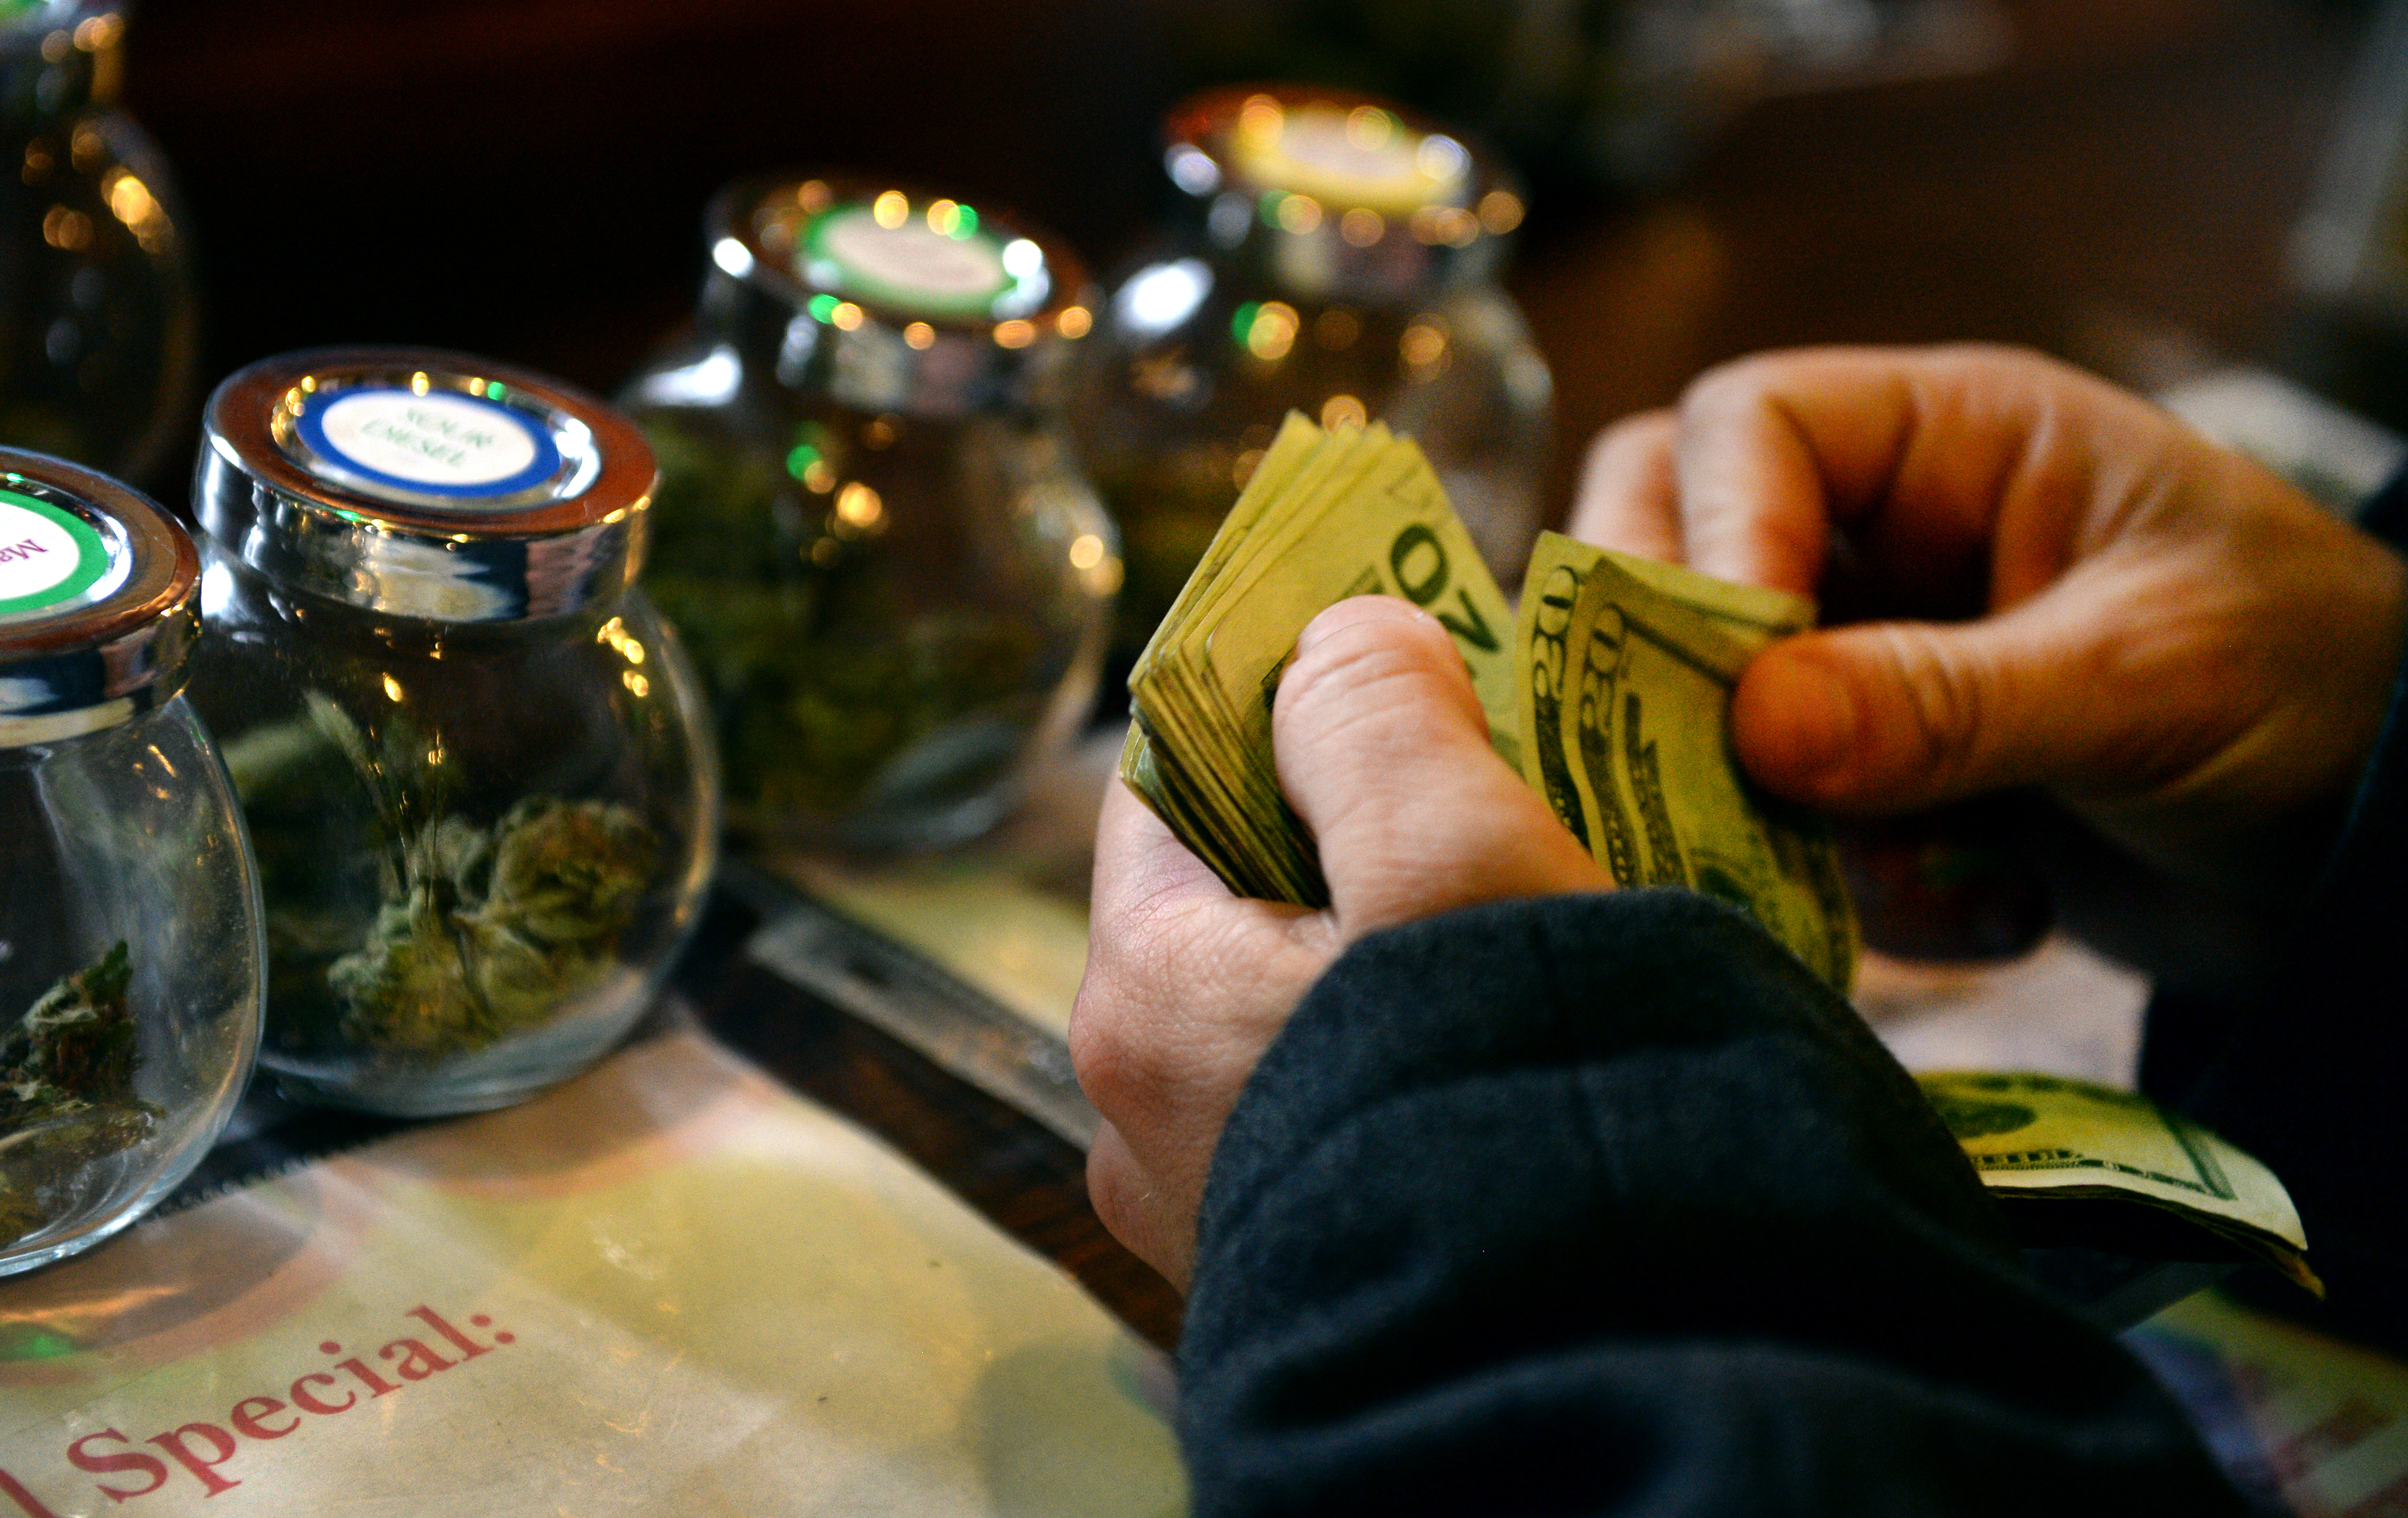 A tour member purchases marijuana at La Conte's Clone Bar & Dispensary during a marijuana tour in Denver on Dec. 6, 2014